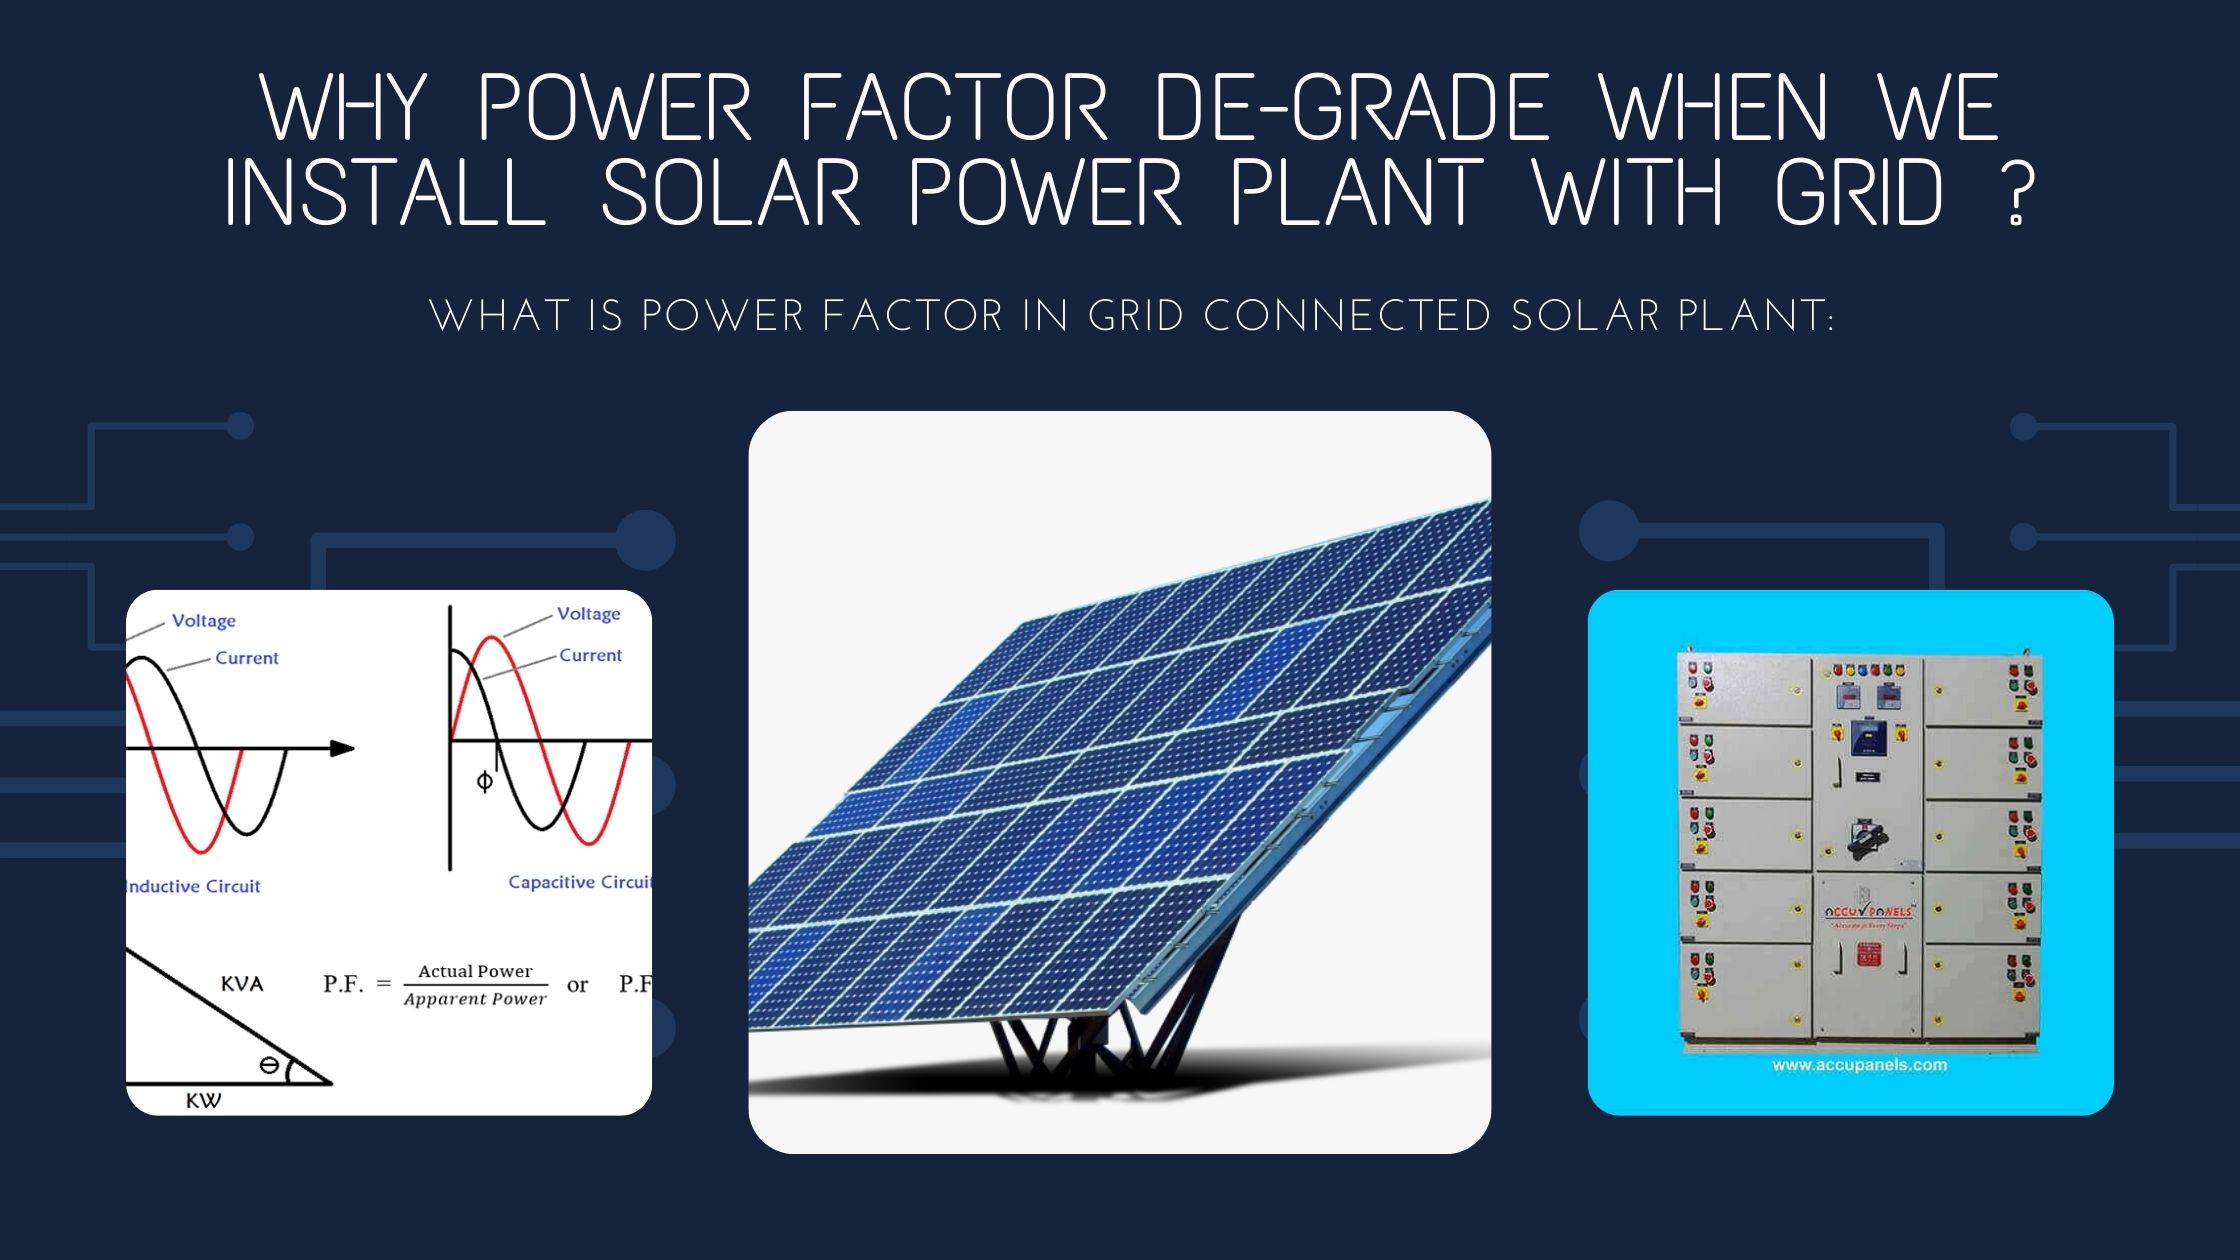 Why Power Factor de-grade when we install Solar Power Plant with Grid ?